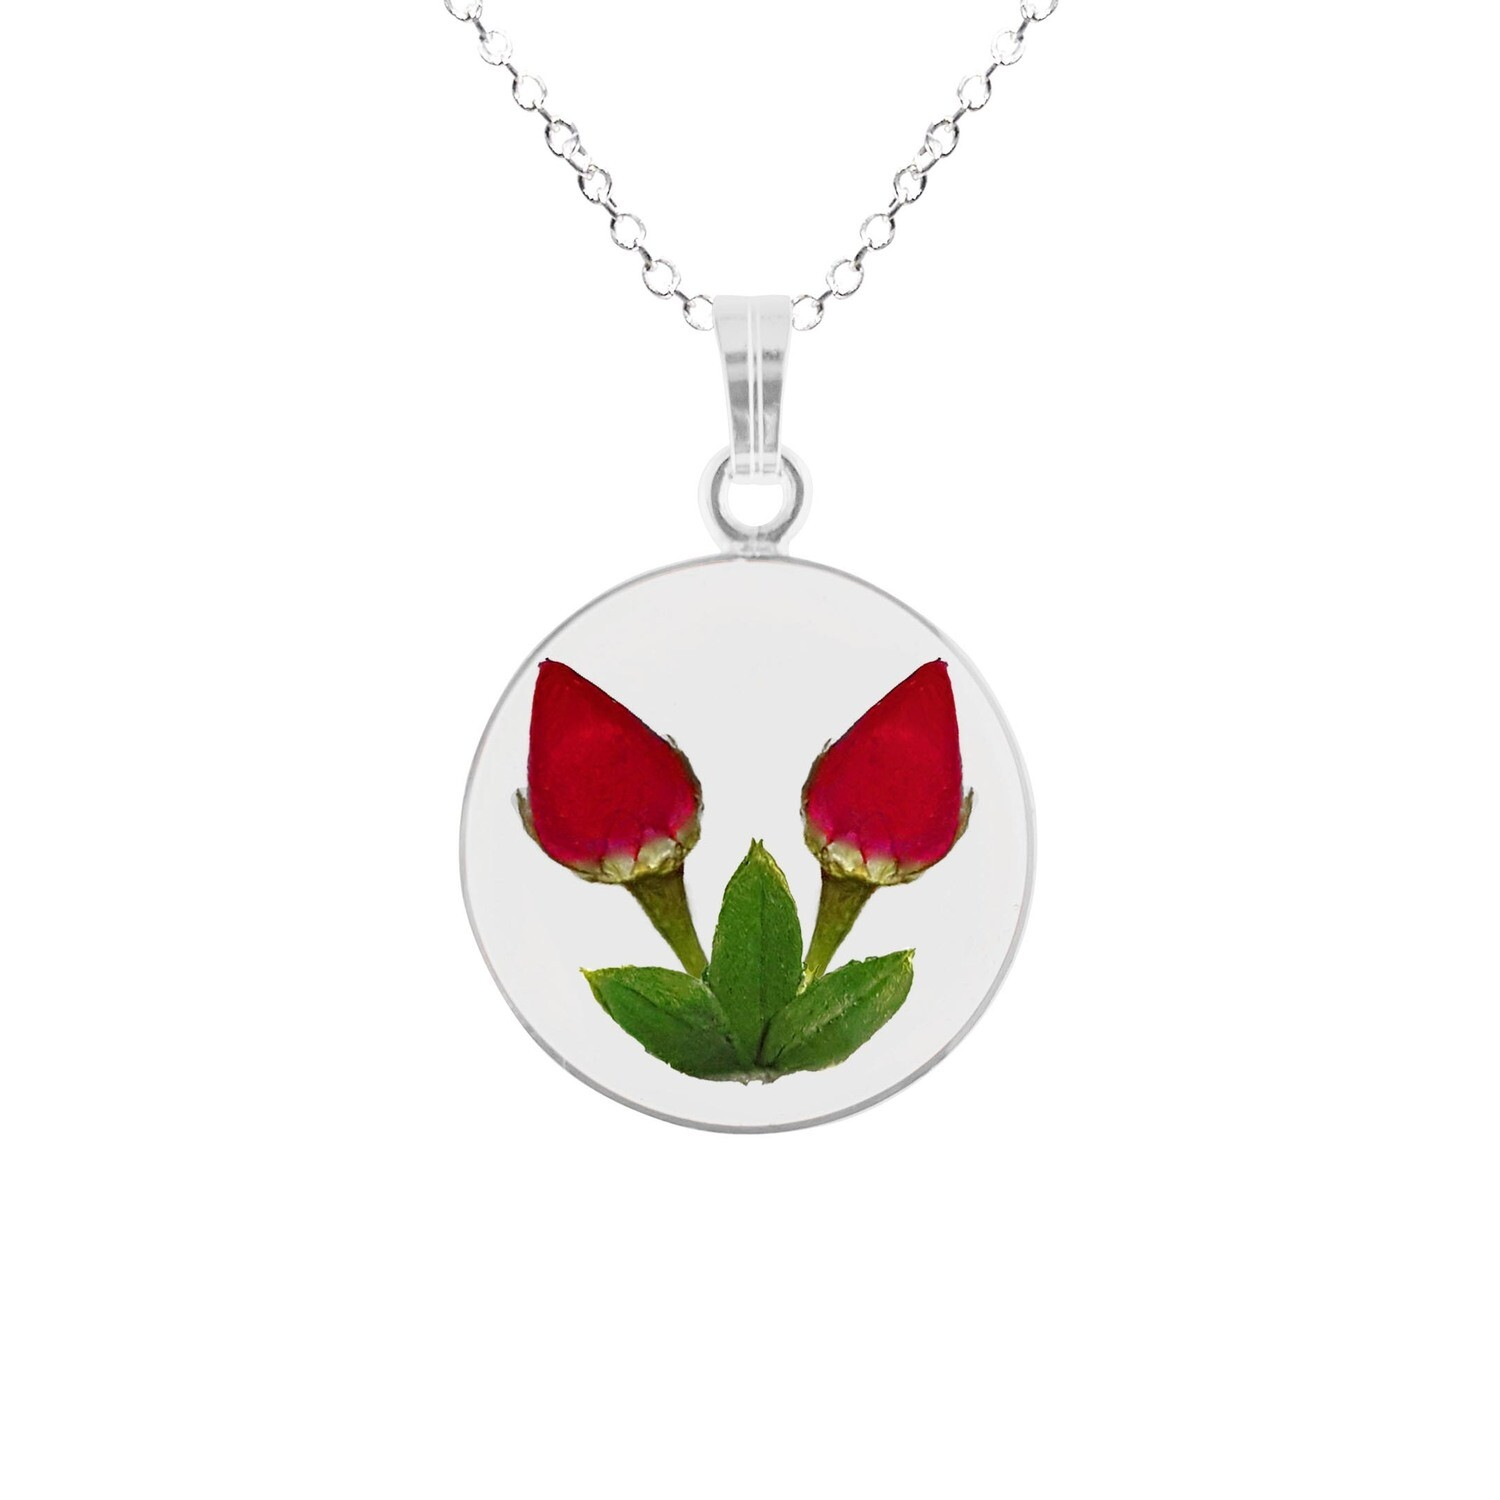 Rose Necklace, Medium Circle, Transparent